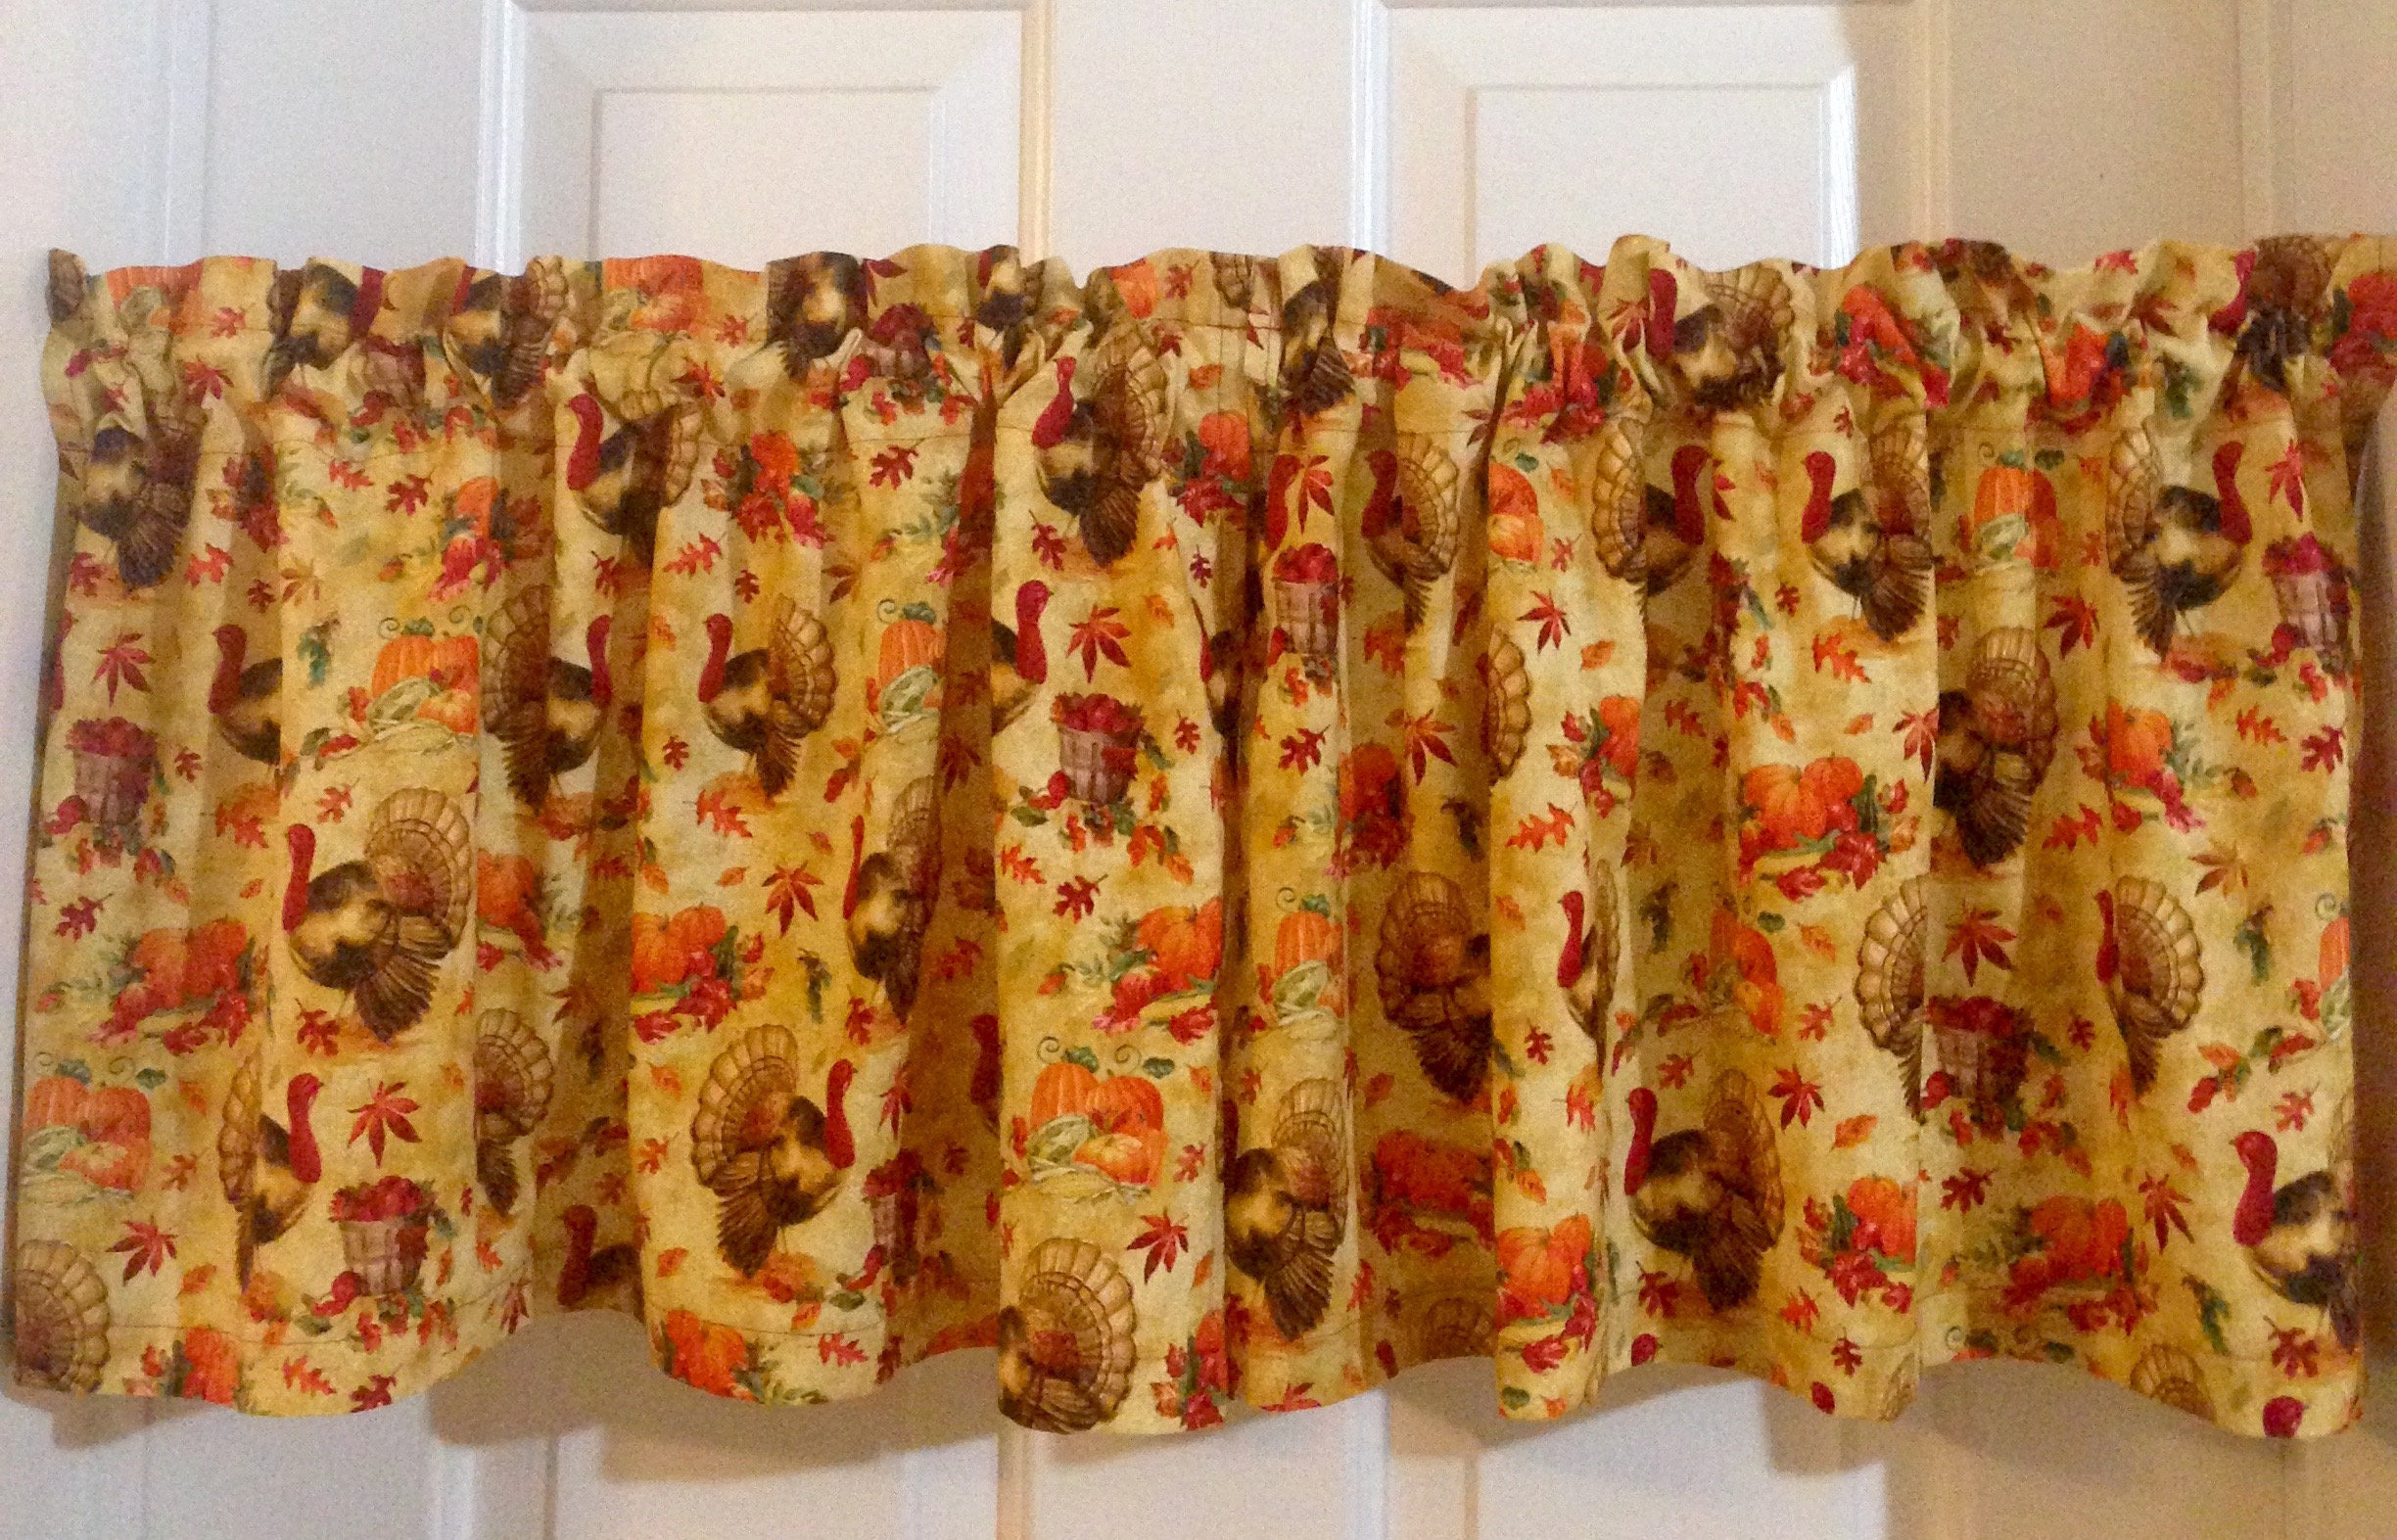 Kitchen Curtains, Kitchen Decor, Home Decor, Country Kitchen Curtains, Cafe Curtains, Three Piece Tier Set Curtains, Country Curtains, Intended For Spring Daisy Tiered Curtain 3 Piece Sets (View 12 of 20)